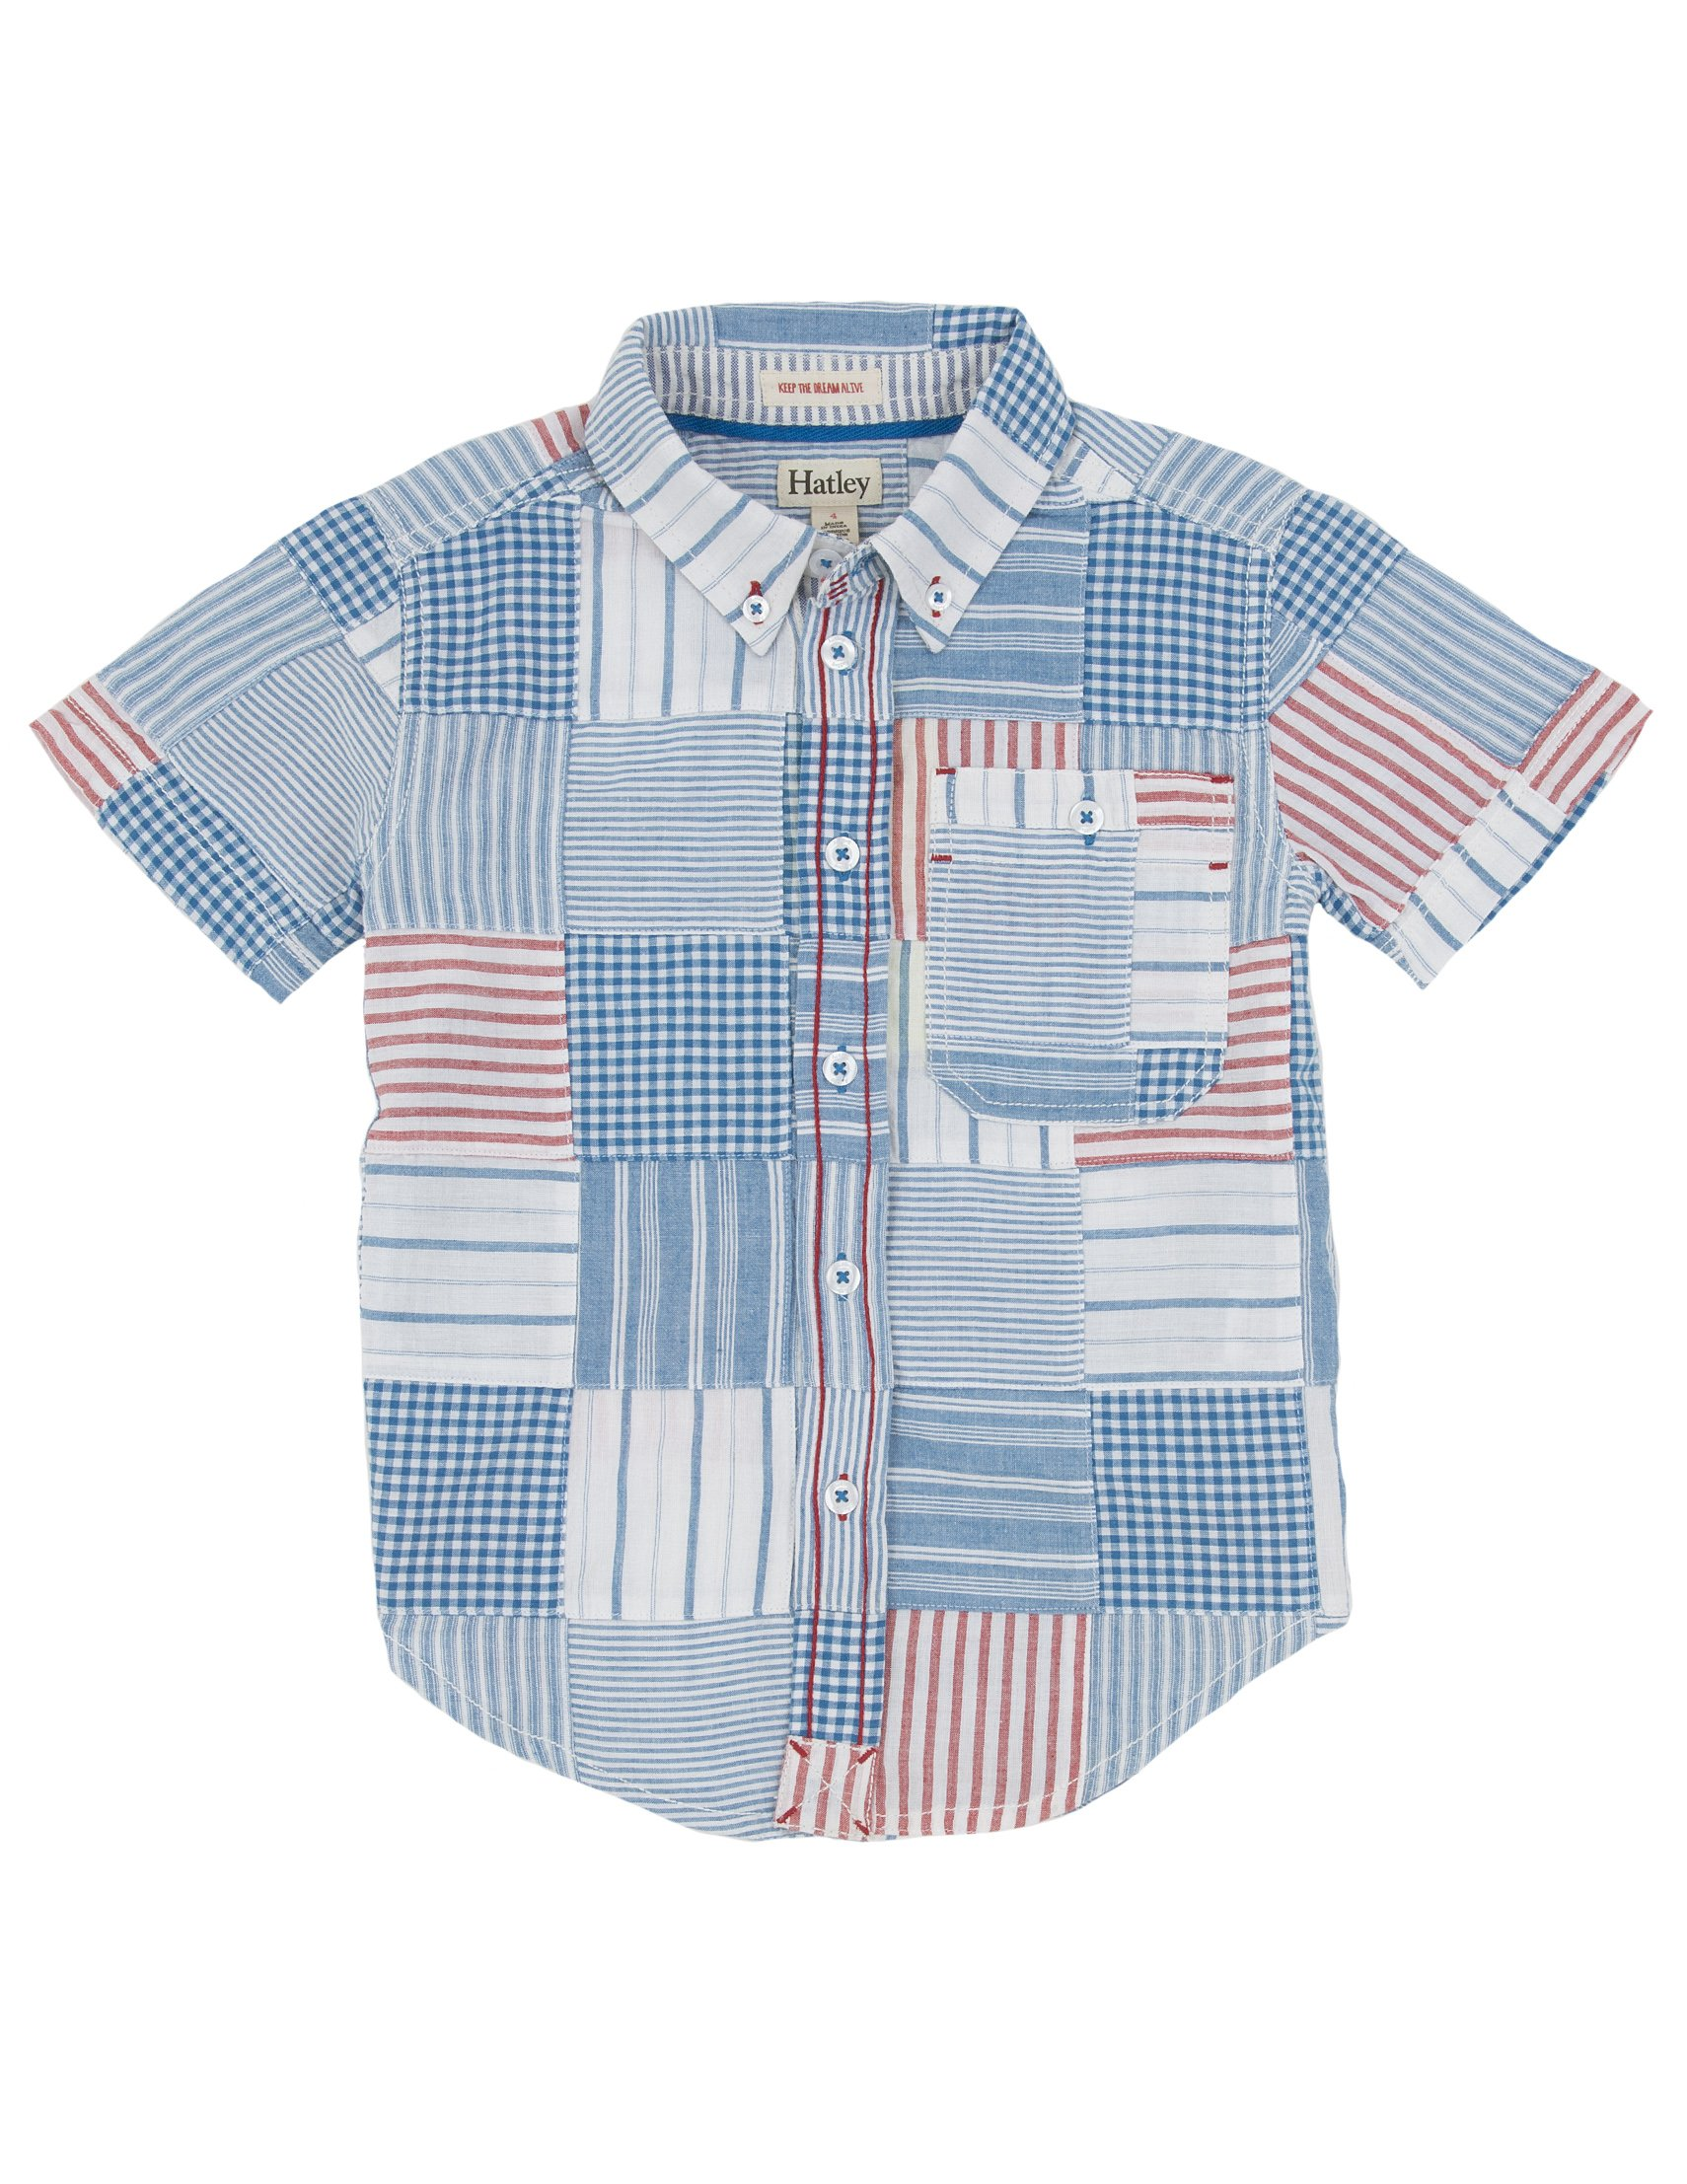 Hatley Little Boys' Boys Button Down Shirt Madras, Multi, 4T by Hatley